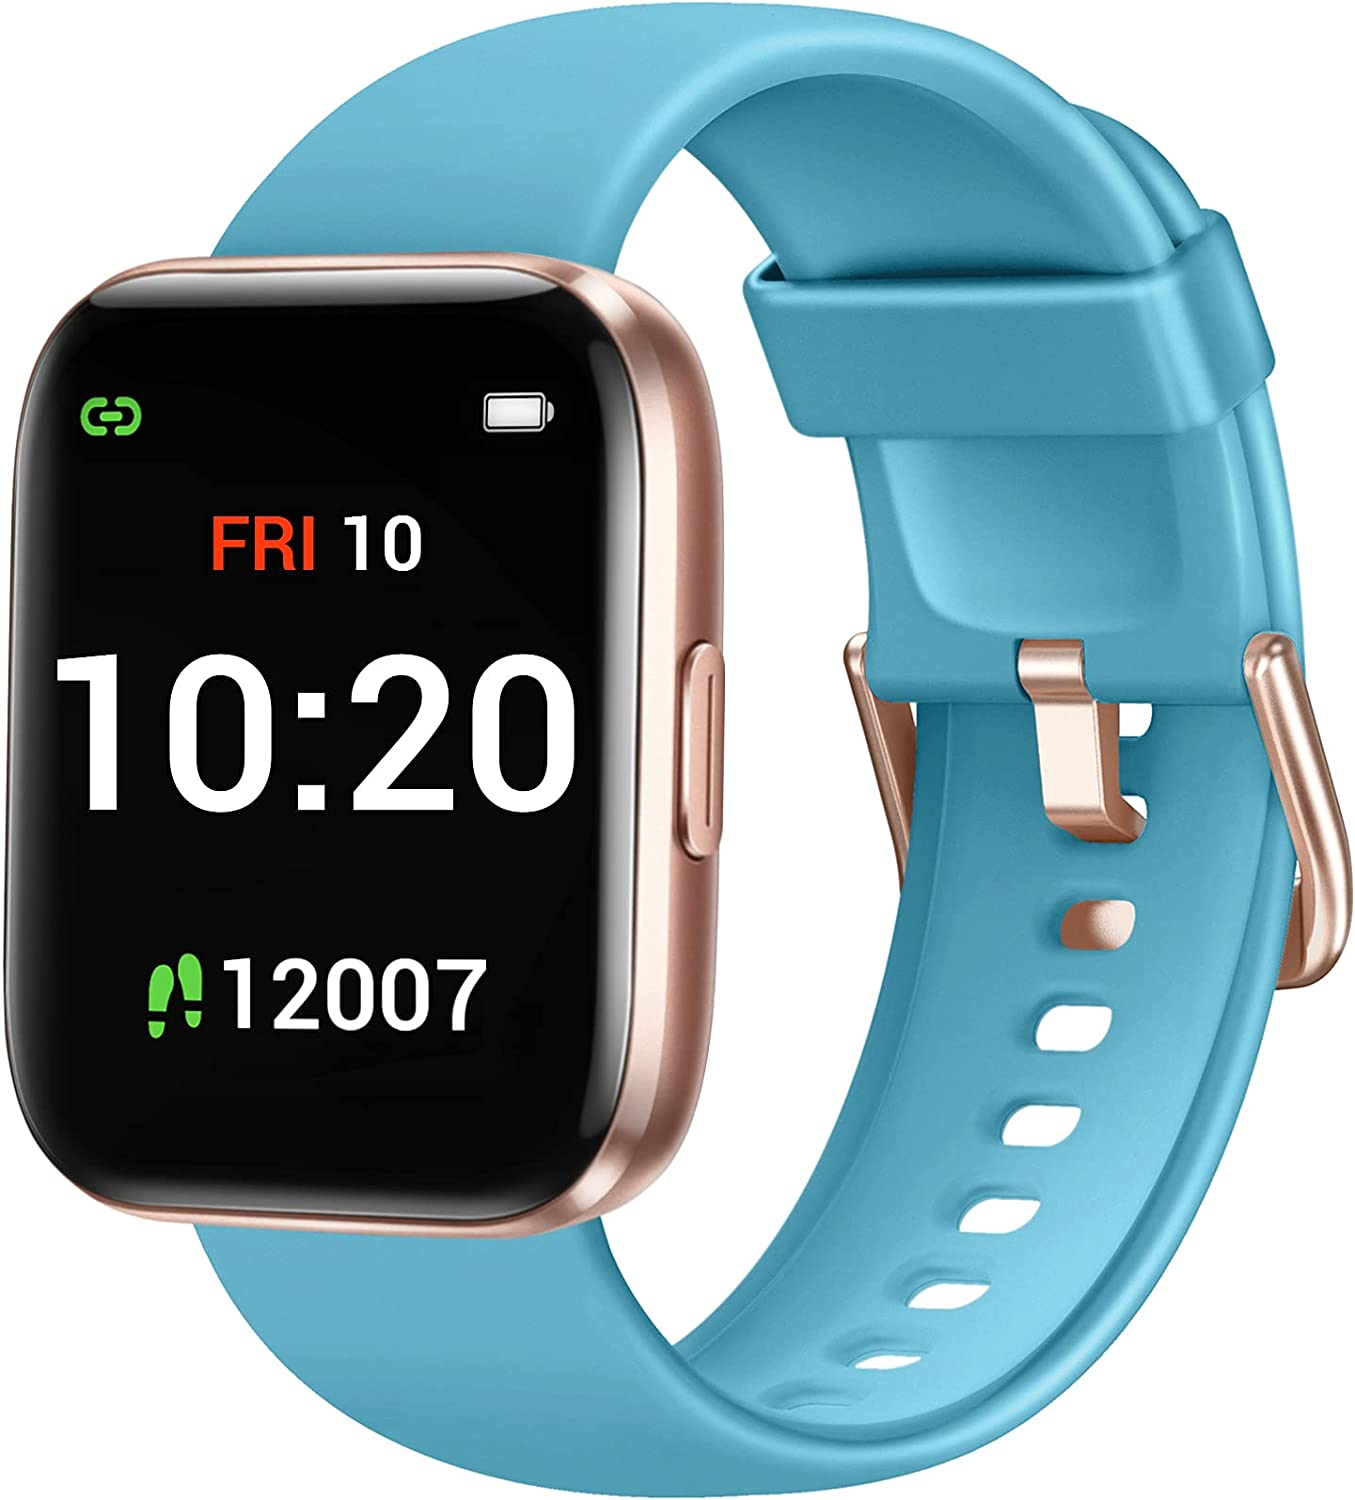 Letsfit Smart Watch for Android Phones Compatible with iPhone Samsung, Fitness Tracker with Blood Oxygen Saturation & Heart Rate Monitor, IP68 Waterproof Cardio Watch for Women Men, Blue